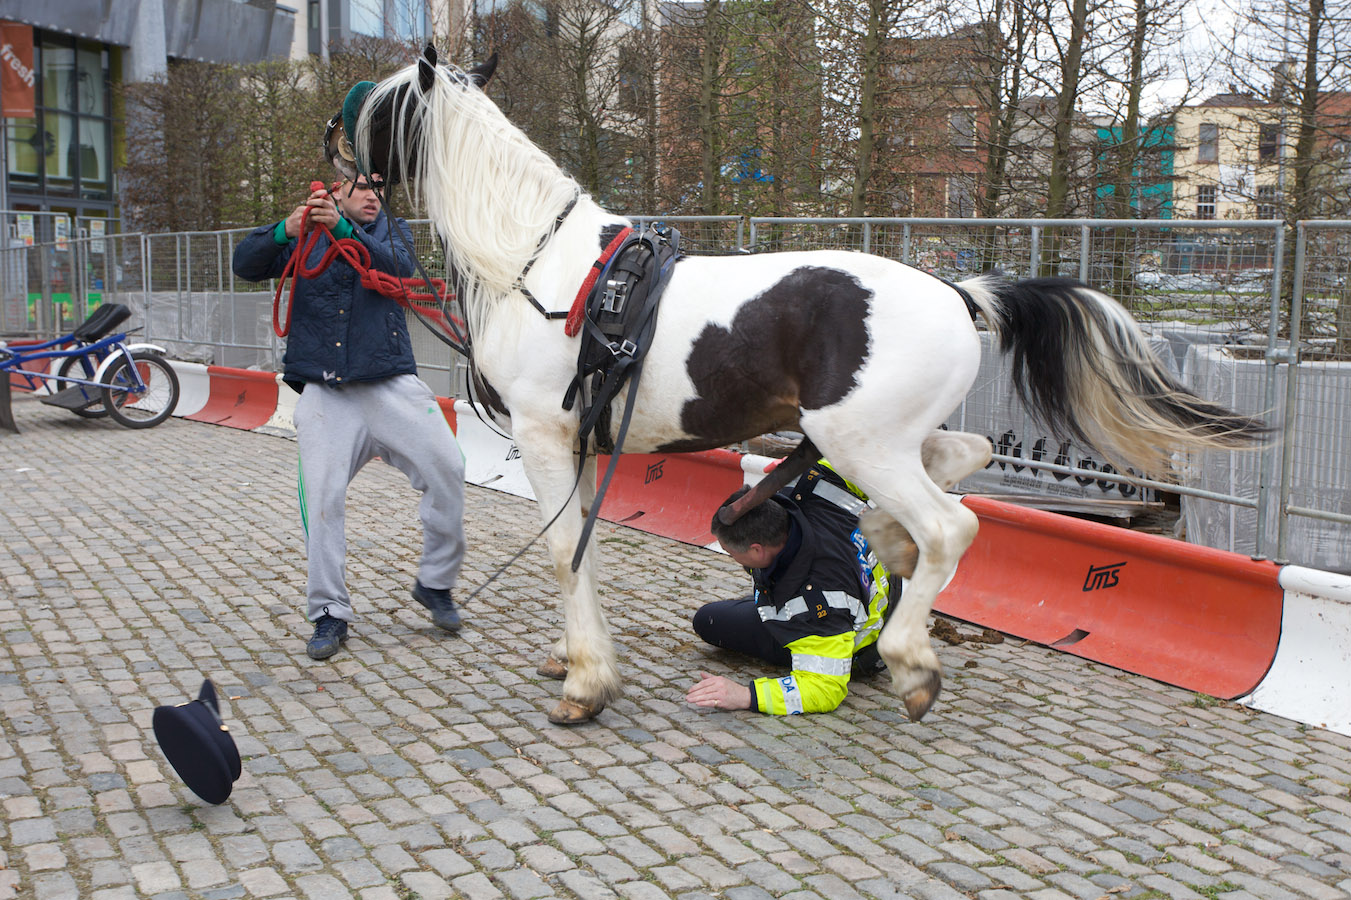 Horse mounts Policeman [THE VIDEO] | The Poke